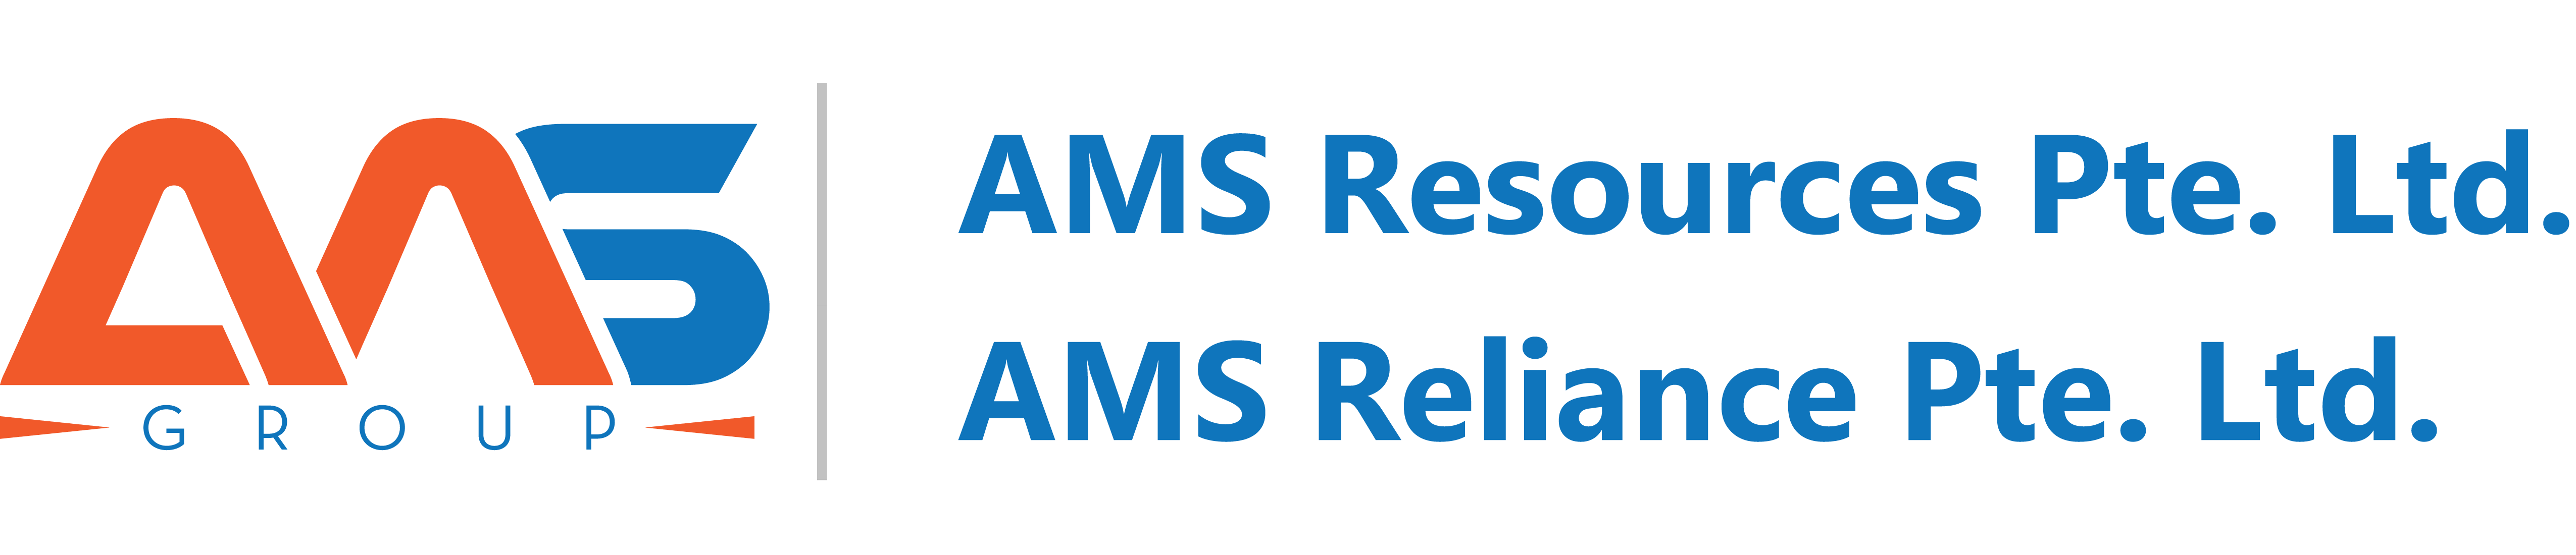 AMS Group of Companies